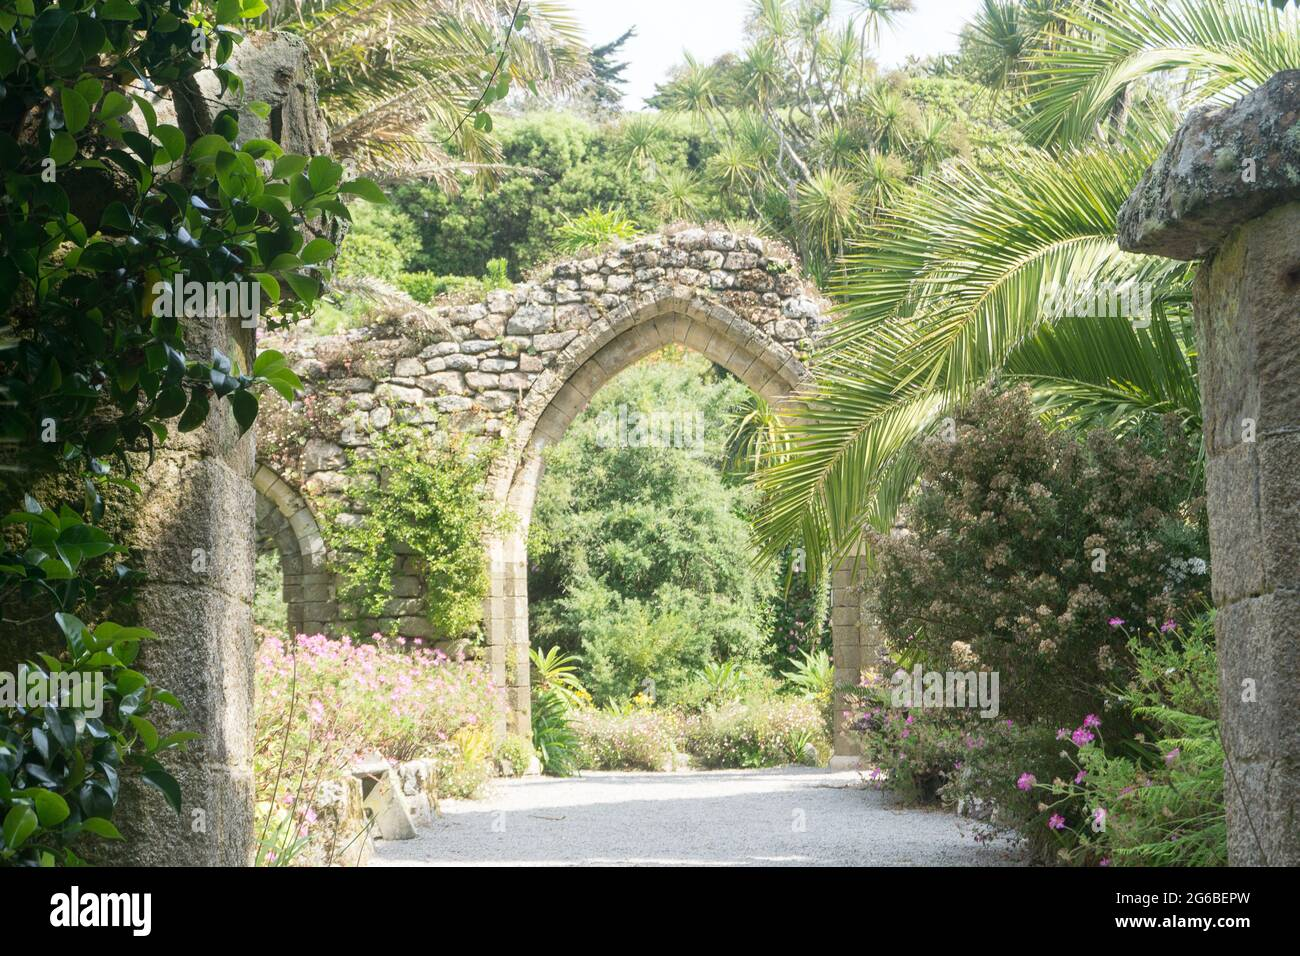 Archway of the ruins of the Benedictine Abbey in Abbey Gardens, Tresco, Isles of Scilly, Cornwall, UK Stock Photo